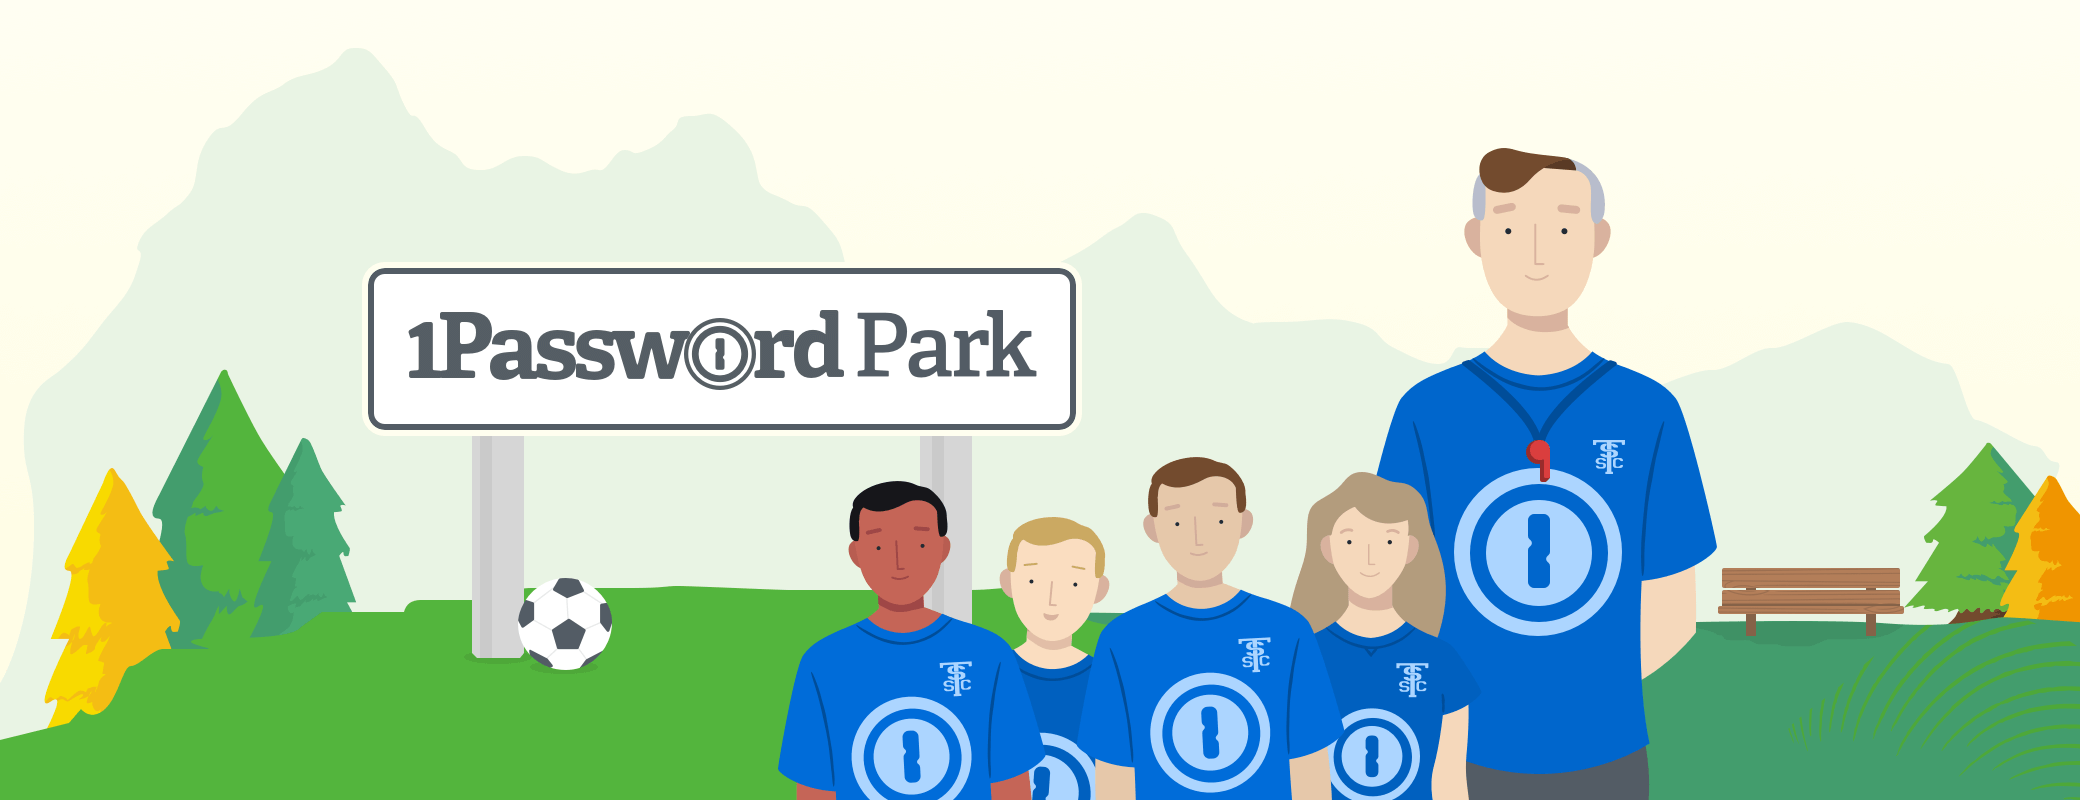 Let's all go to the park - introducing 1Password Park